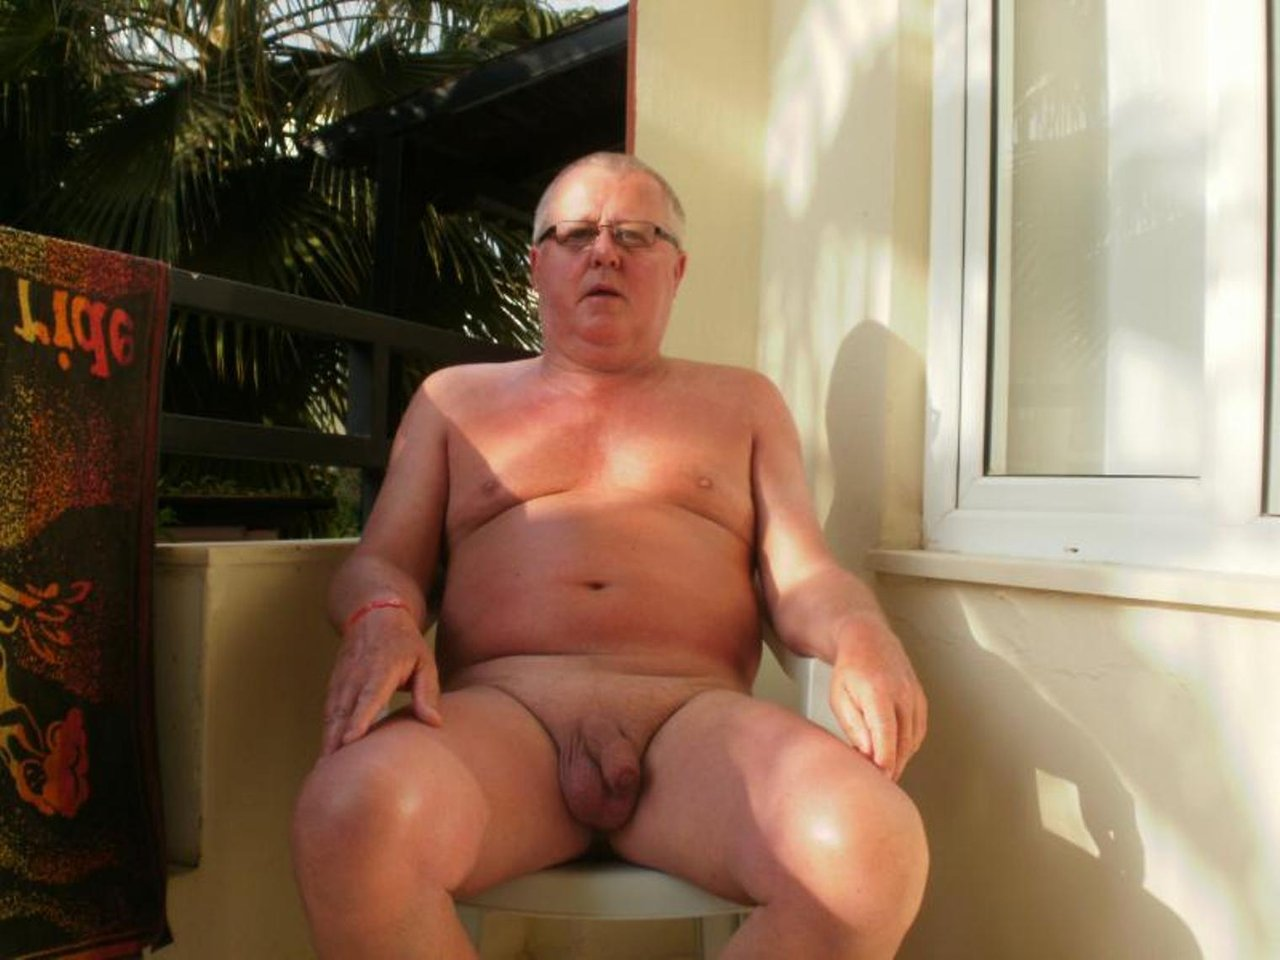 nude gay small cock blowjob outdoors